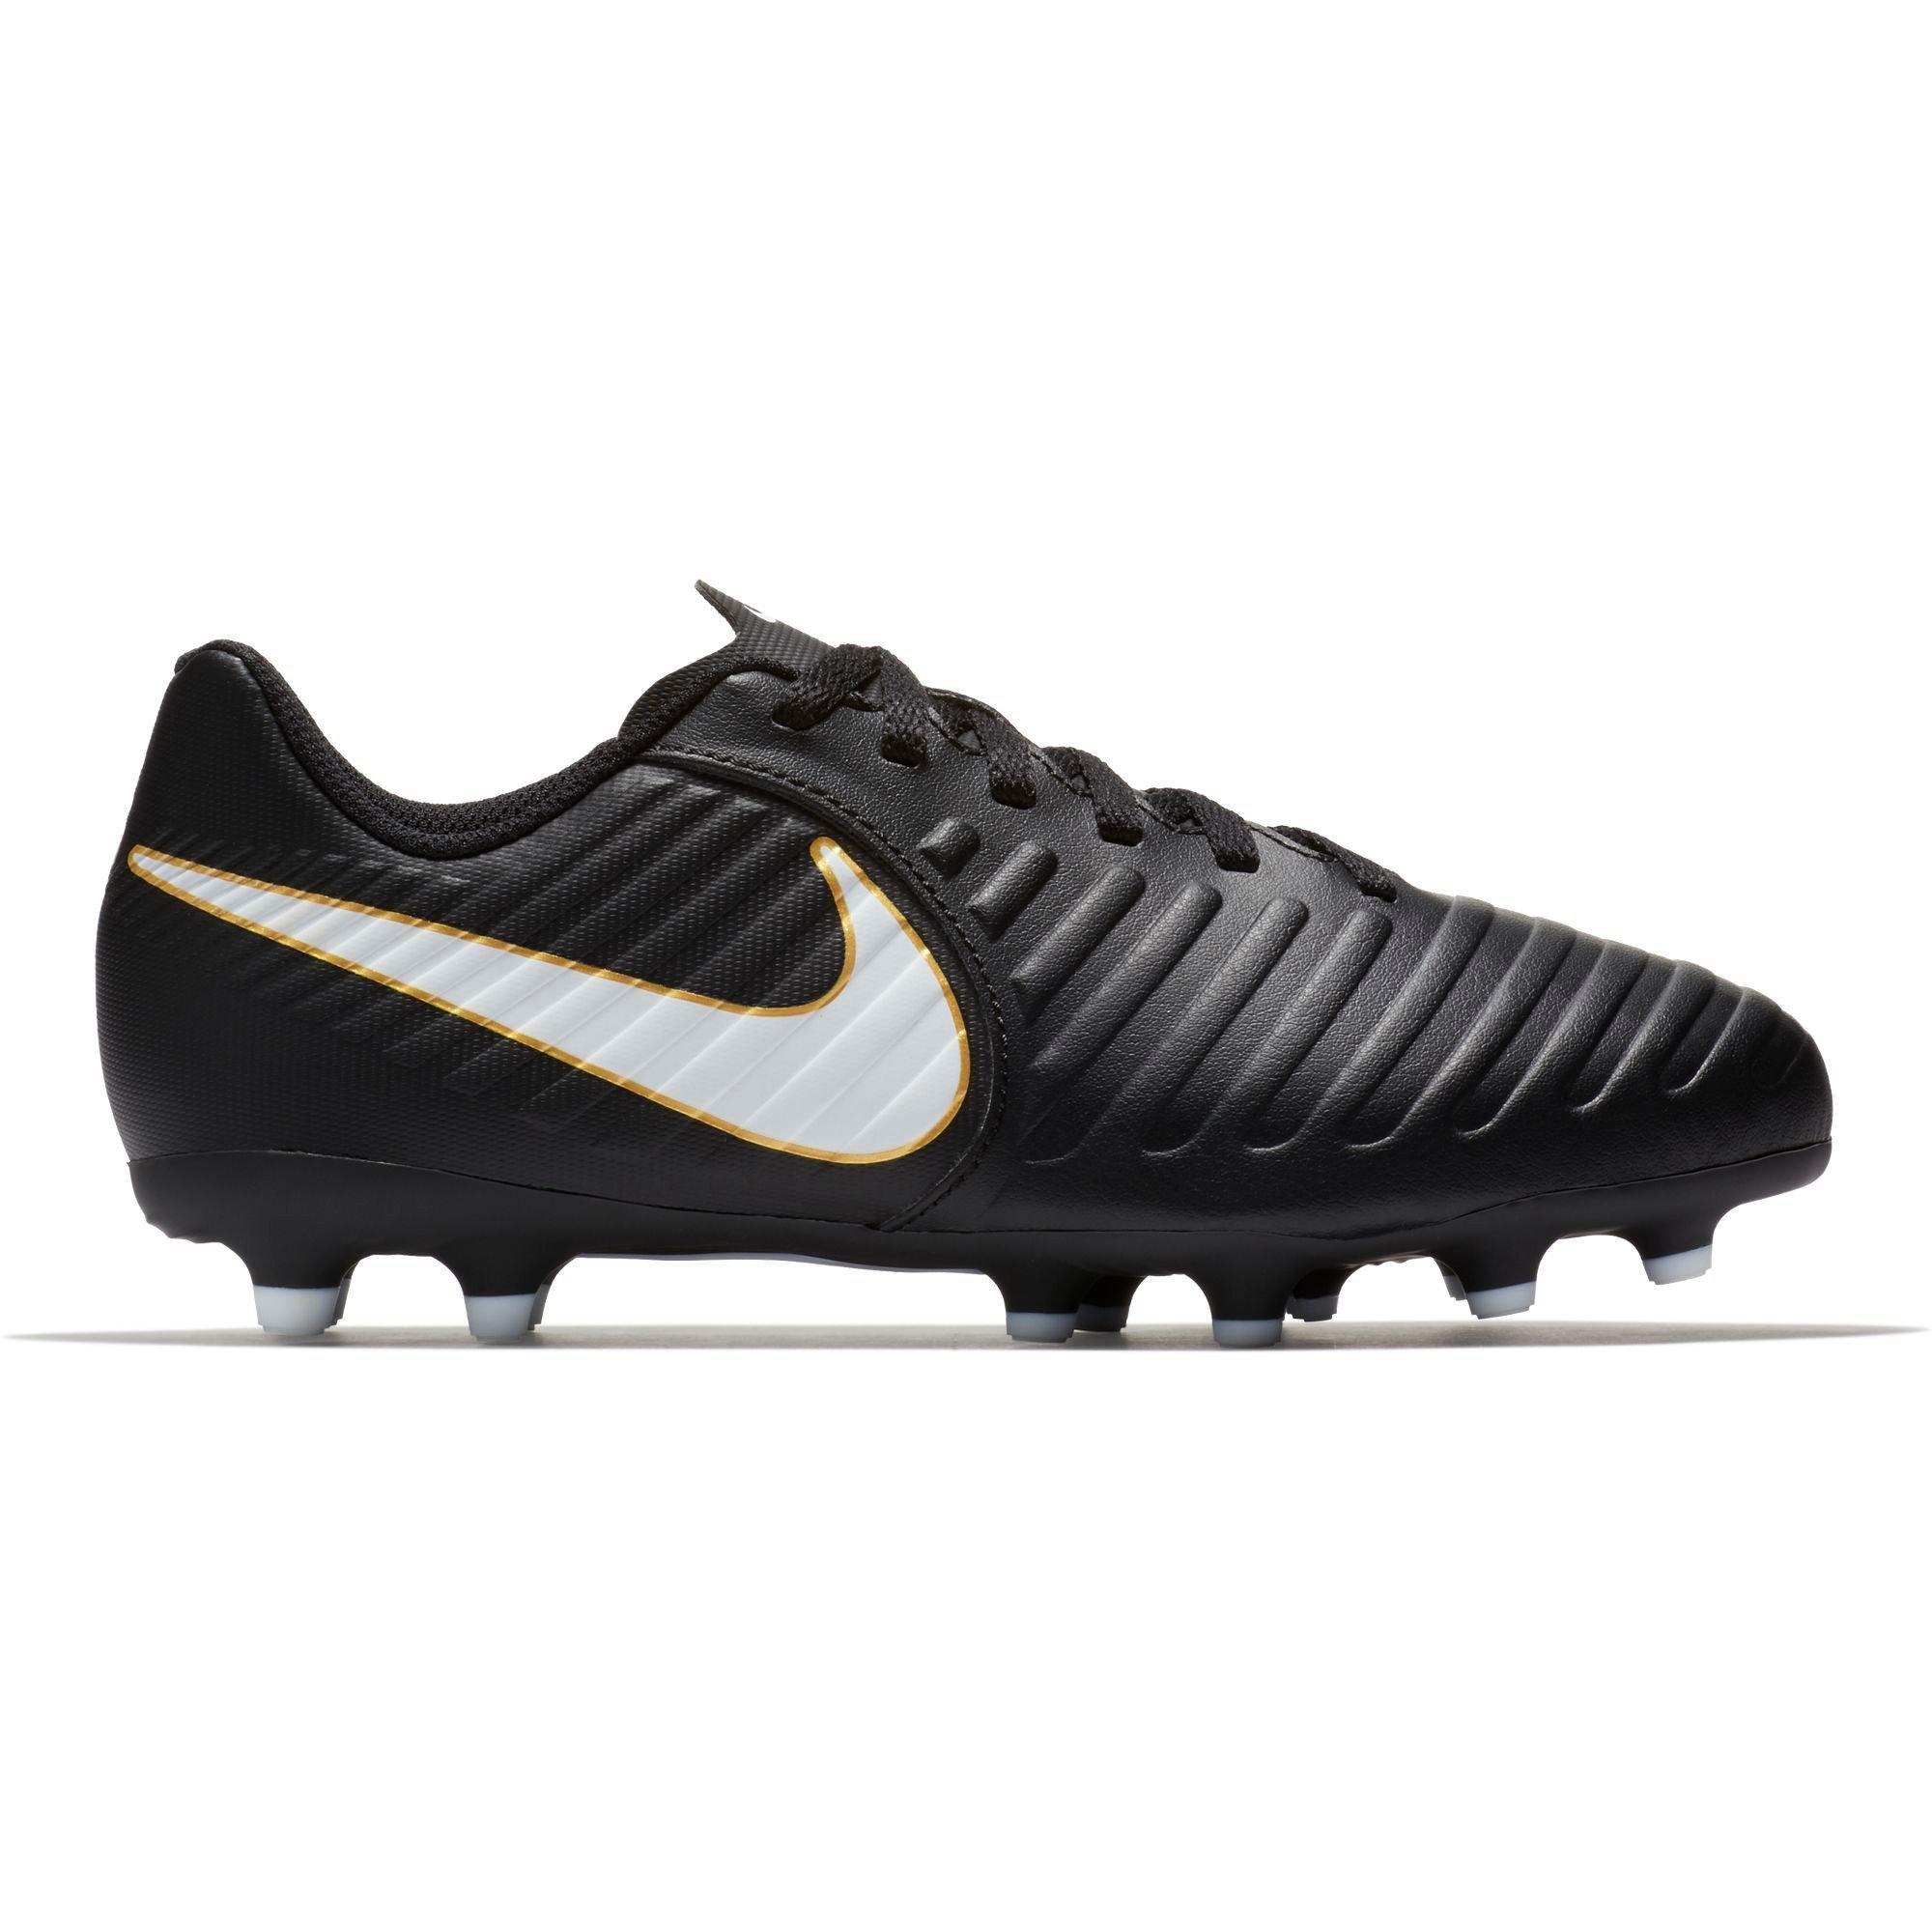 ... Kids\u0027 Soccer Cleat. Sale Price$40.00. 5 out of 5 stars. Read reviews.